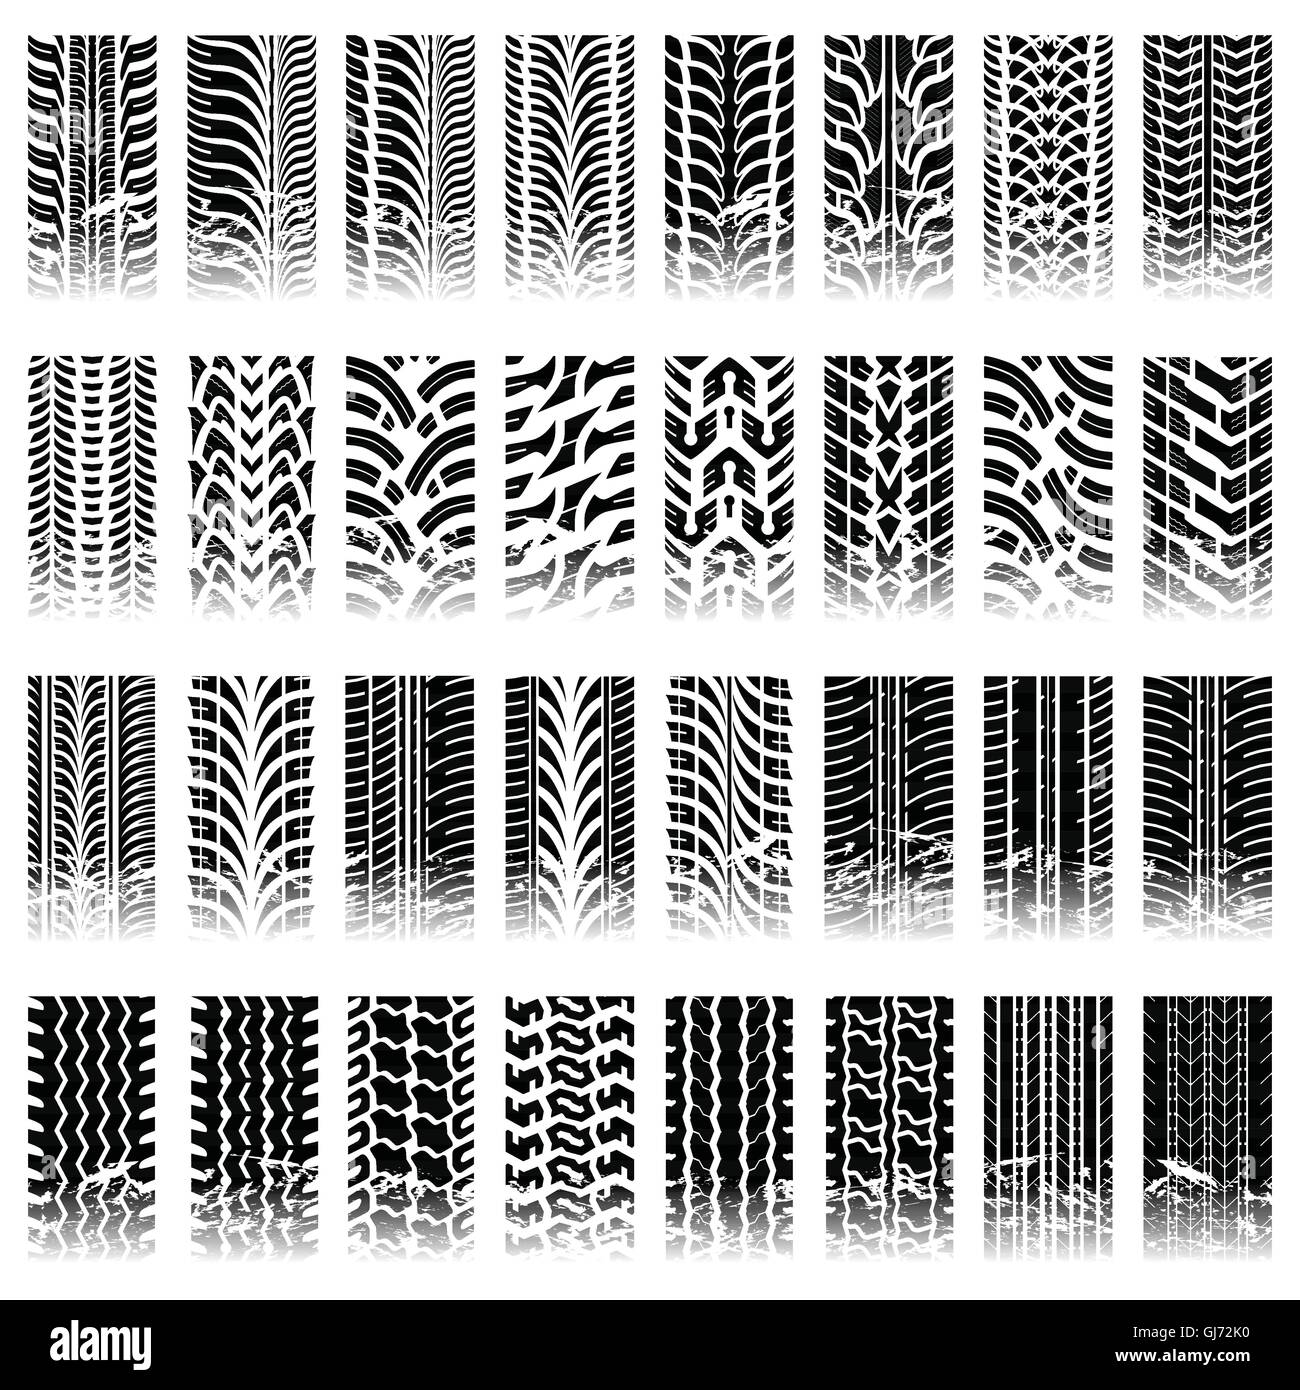 Set of tileable tire track patterns - Stock Image